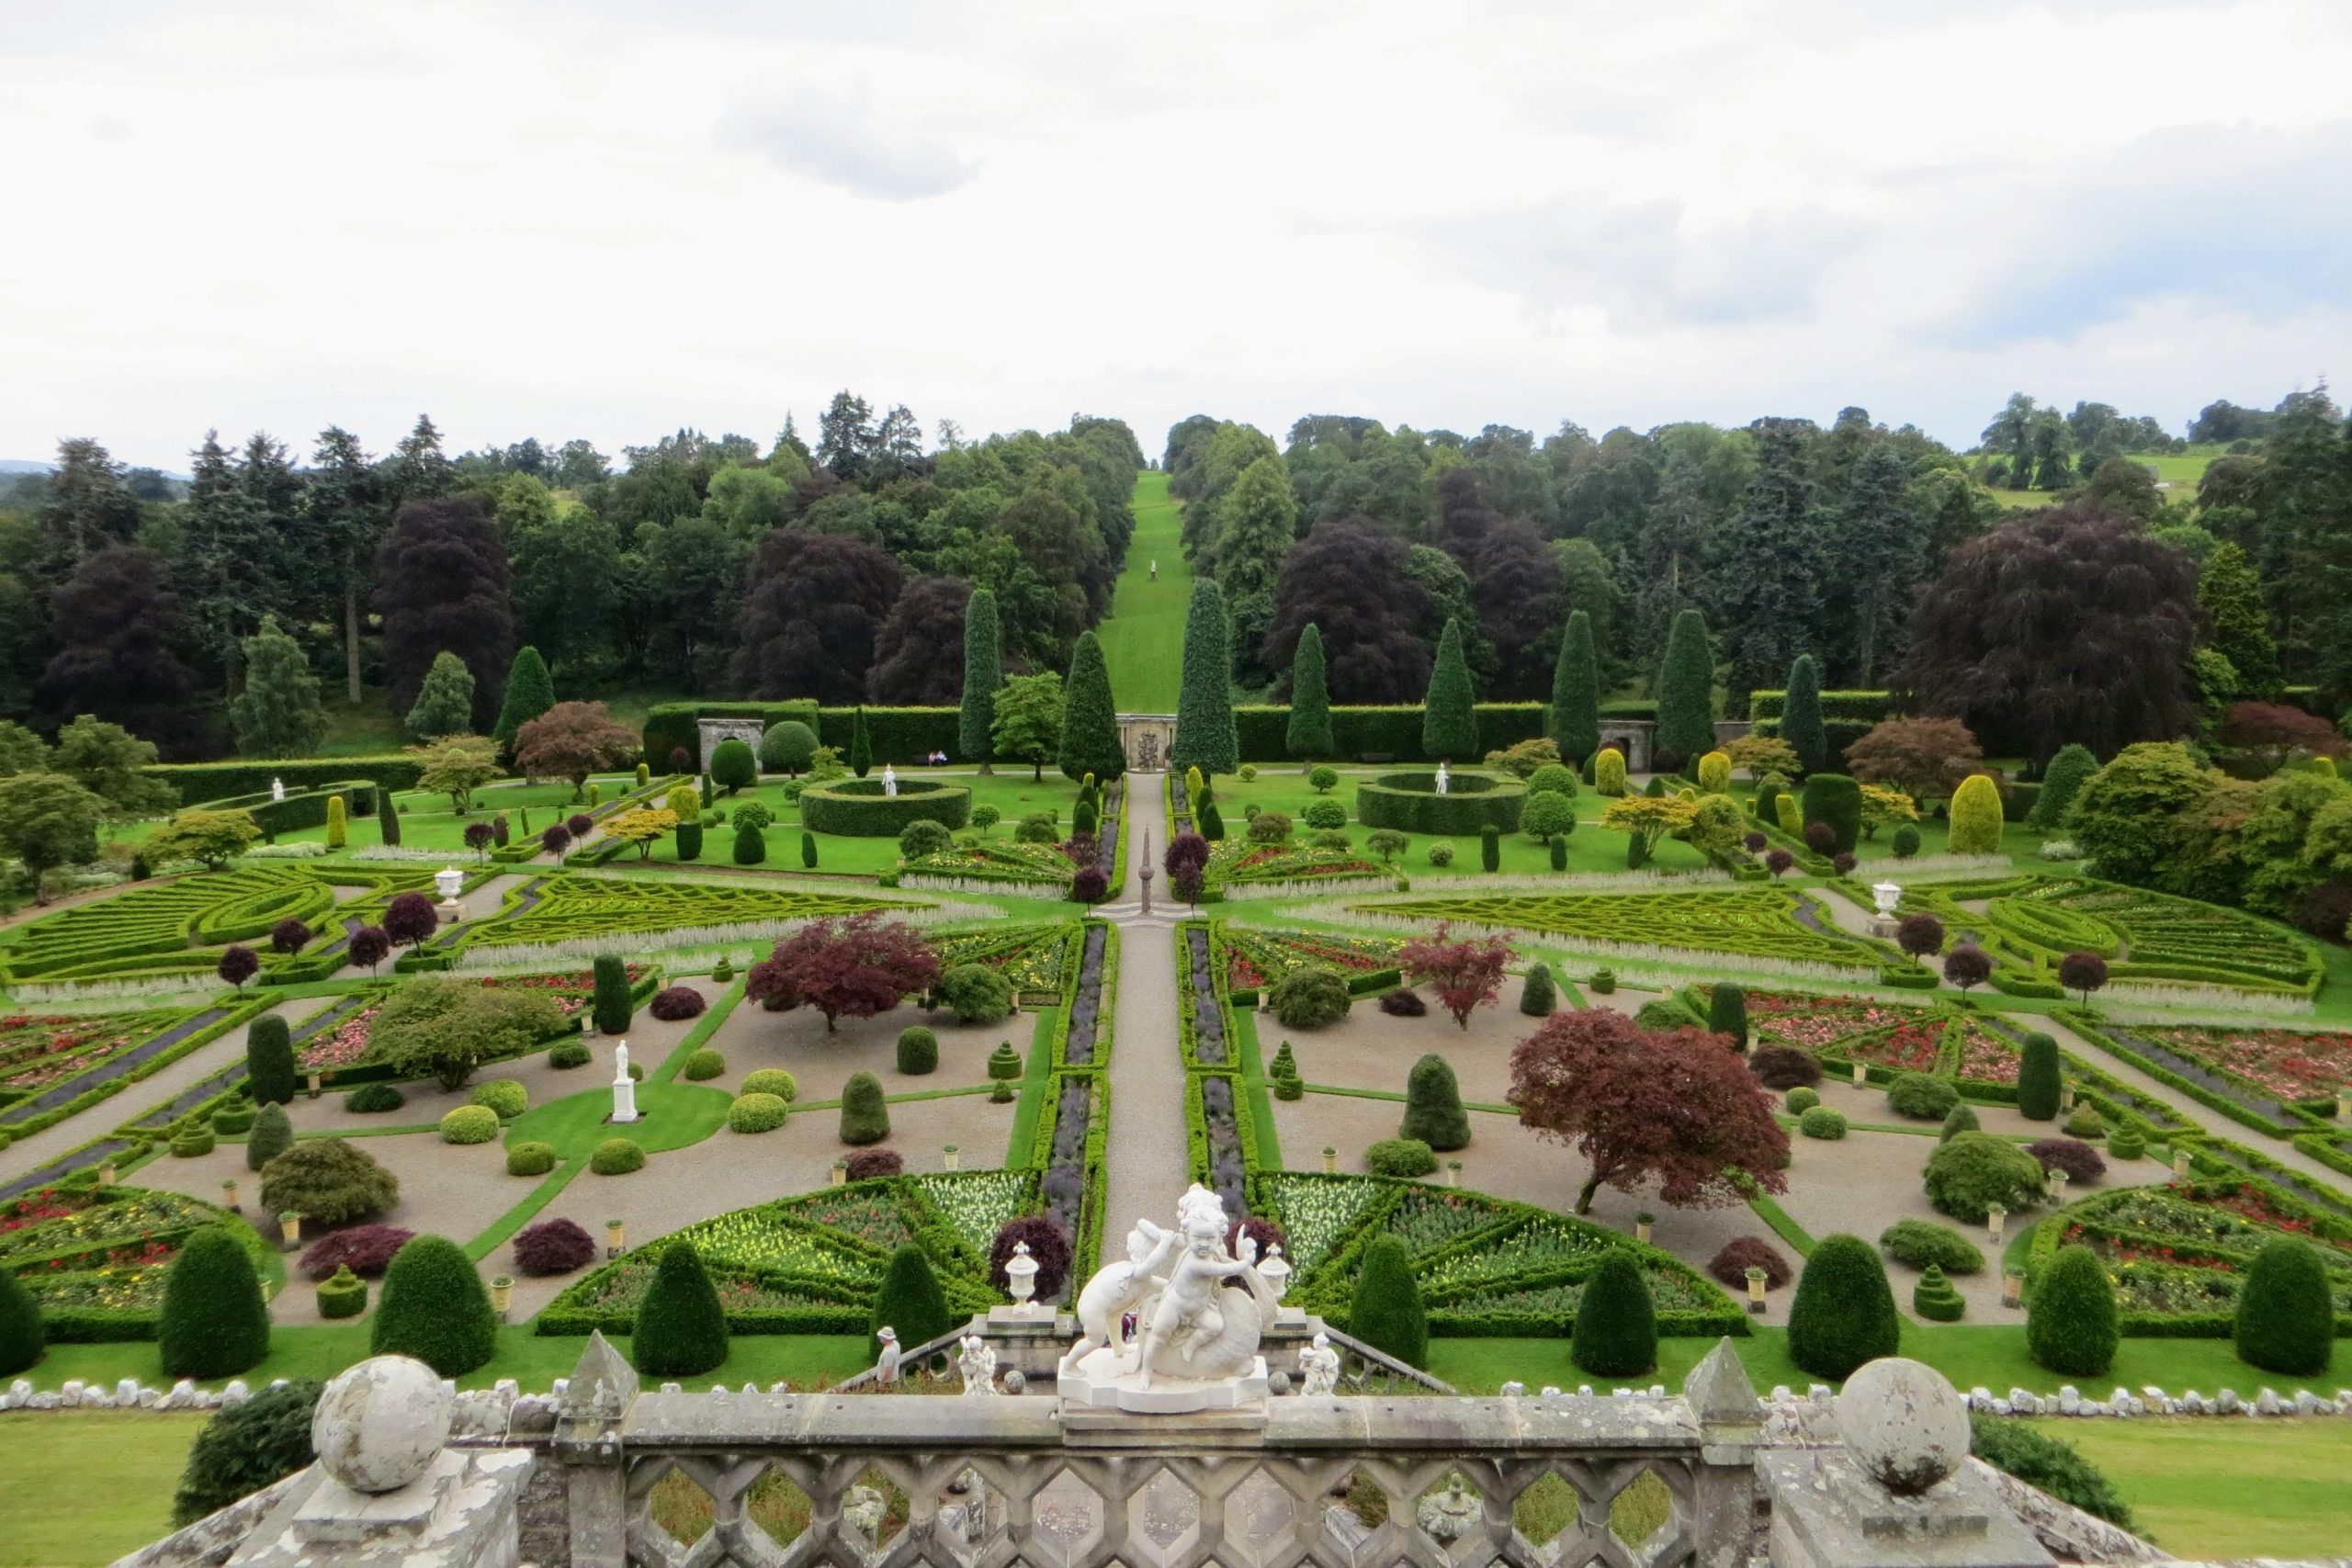 One-day Tours of Scotland - Drummond Castle Gardens